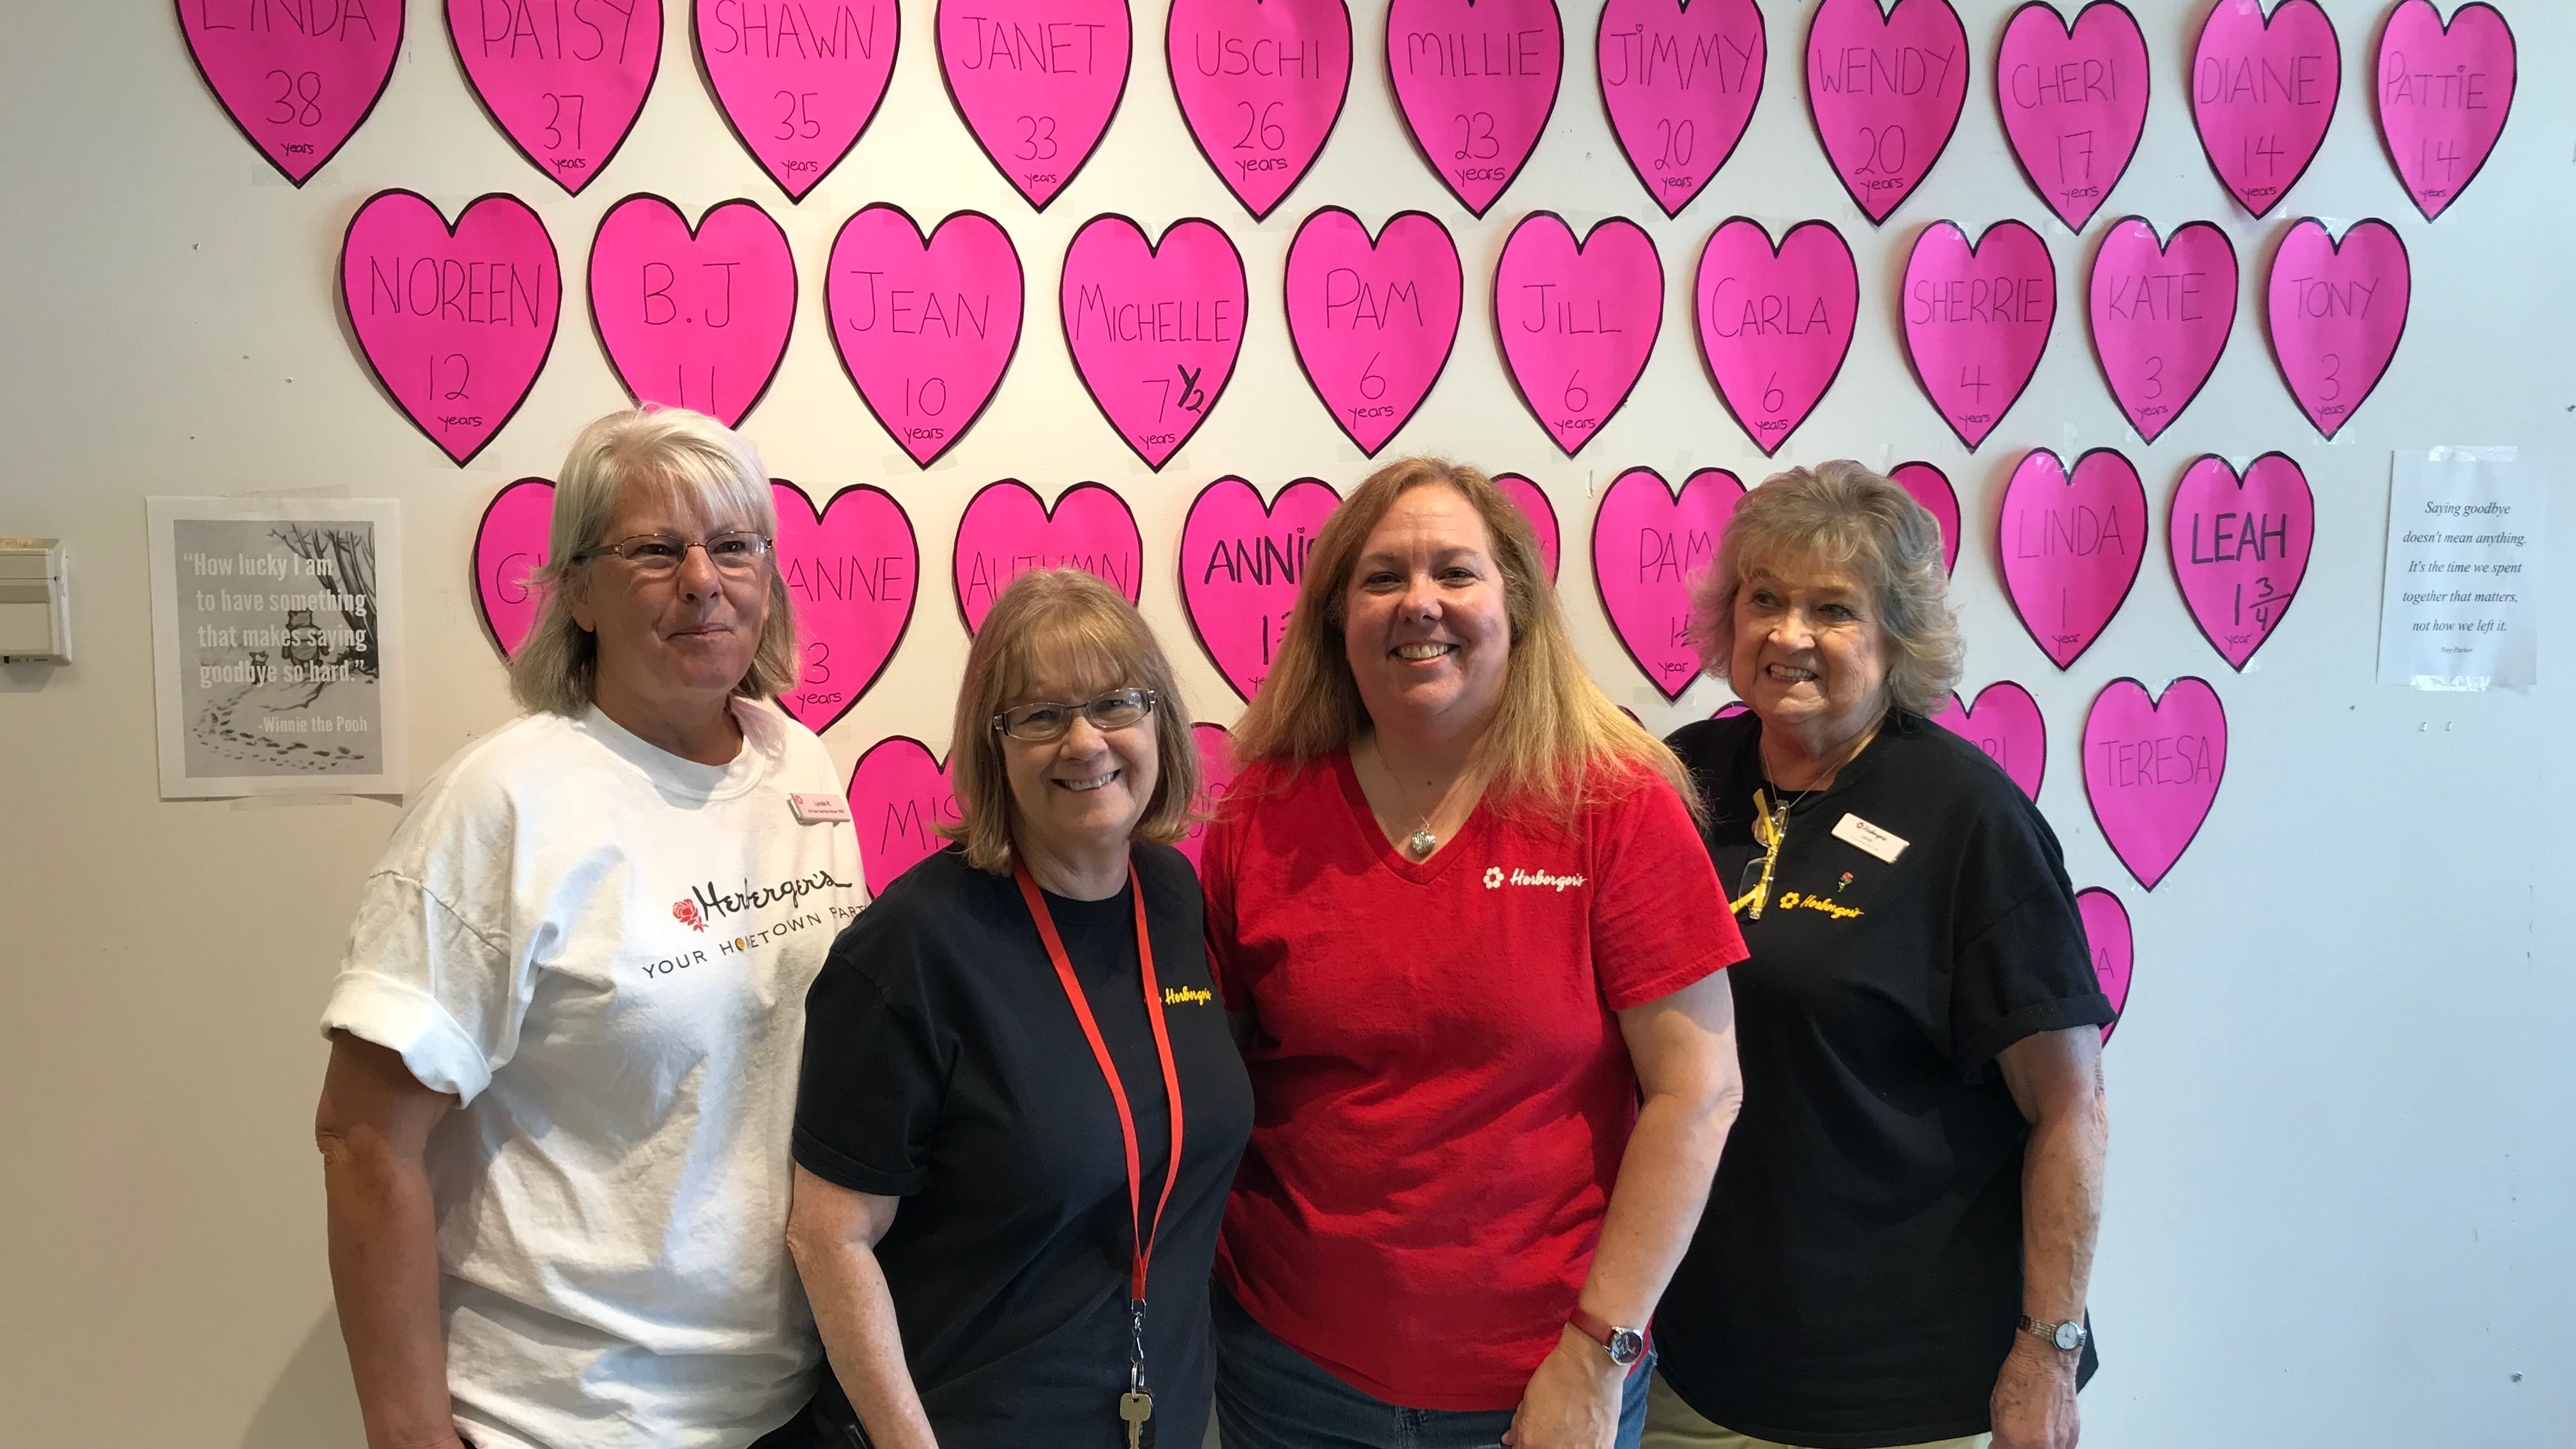 Longtime Herberger's employees, from left, Lynda Reeve, Patsy Lindberg, Shawn Dixon and Janet Otter posed for a photograph before the business closed for good last Wednesday.